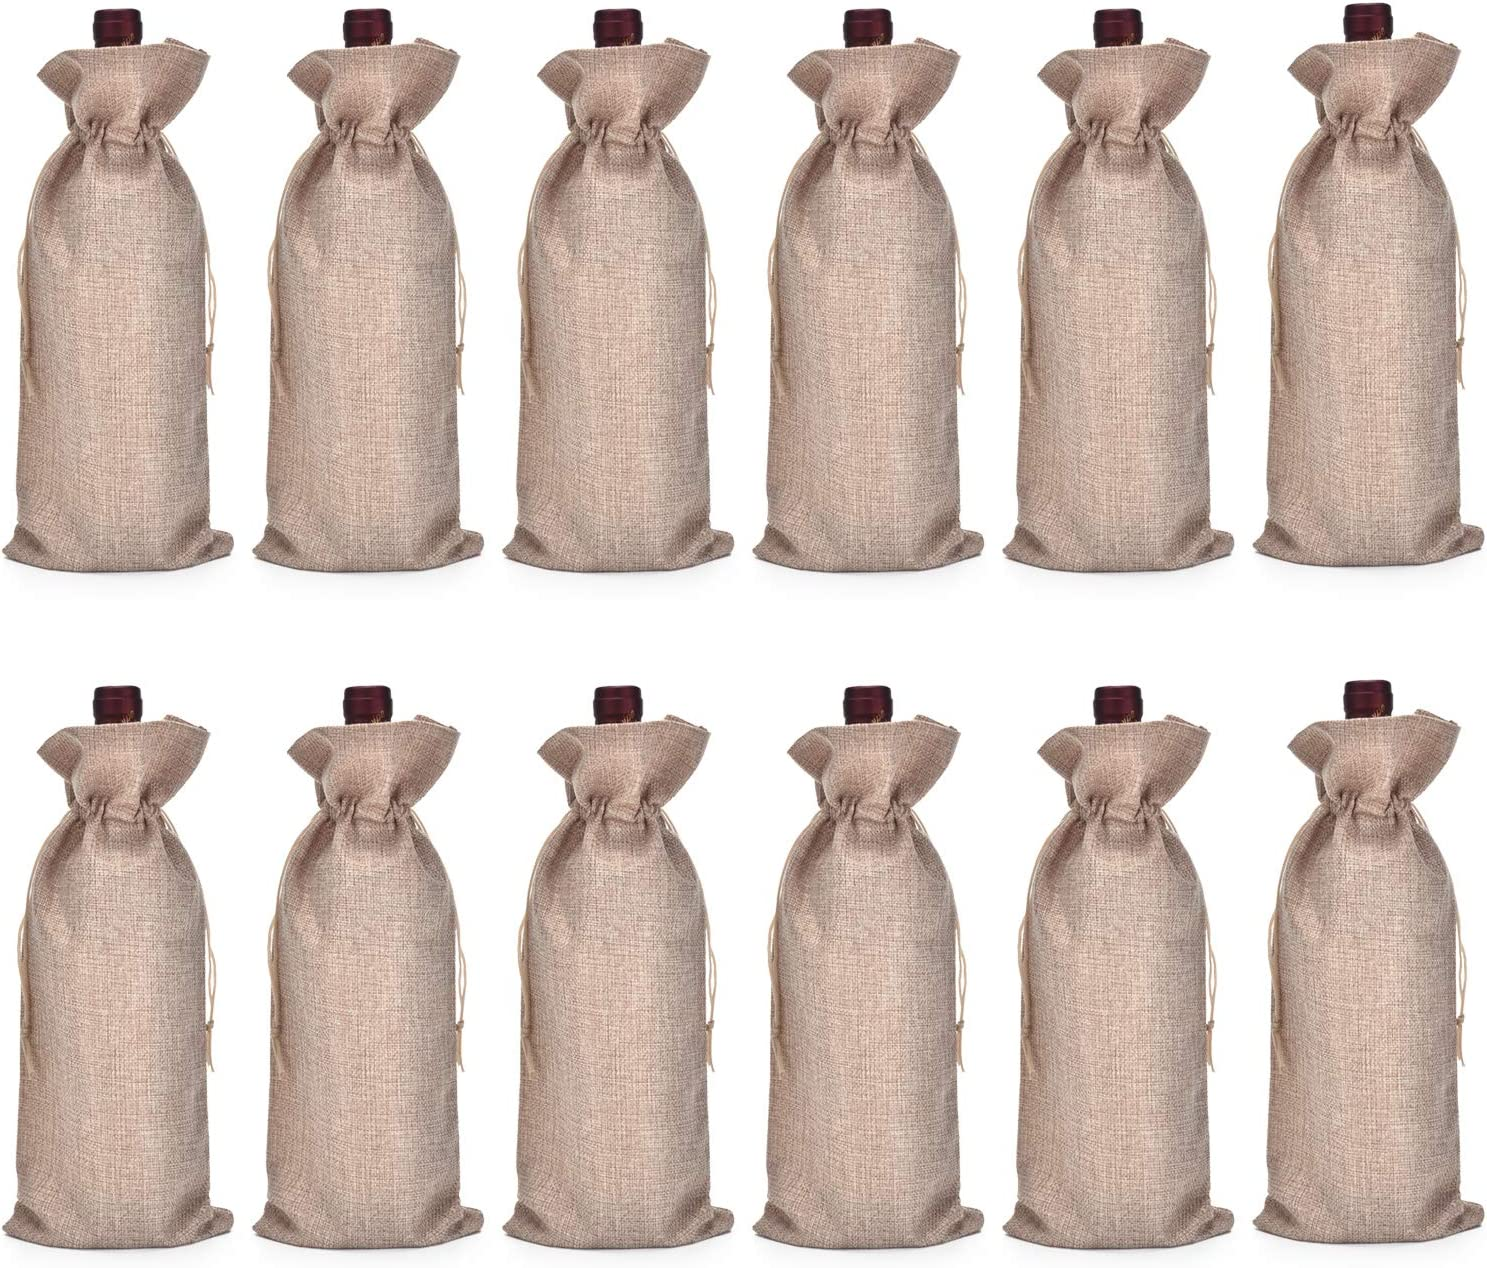 Burlap Wine Bag, 12 Pieces Wine Bottle Gift Bags with Drawstring for Wedding, Party Favors, Christmas, Holiday and Wine Tasting Party Supplies (Natural)